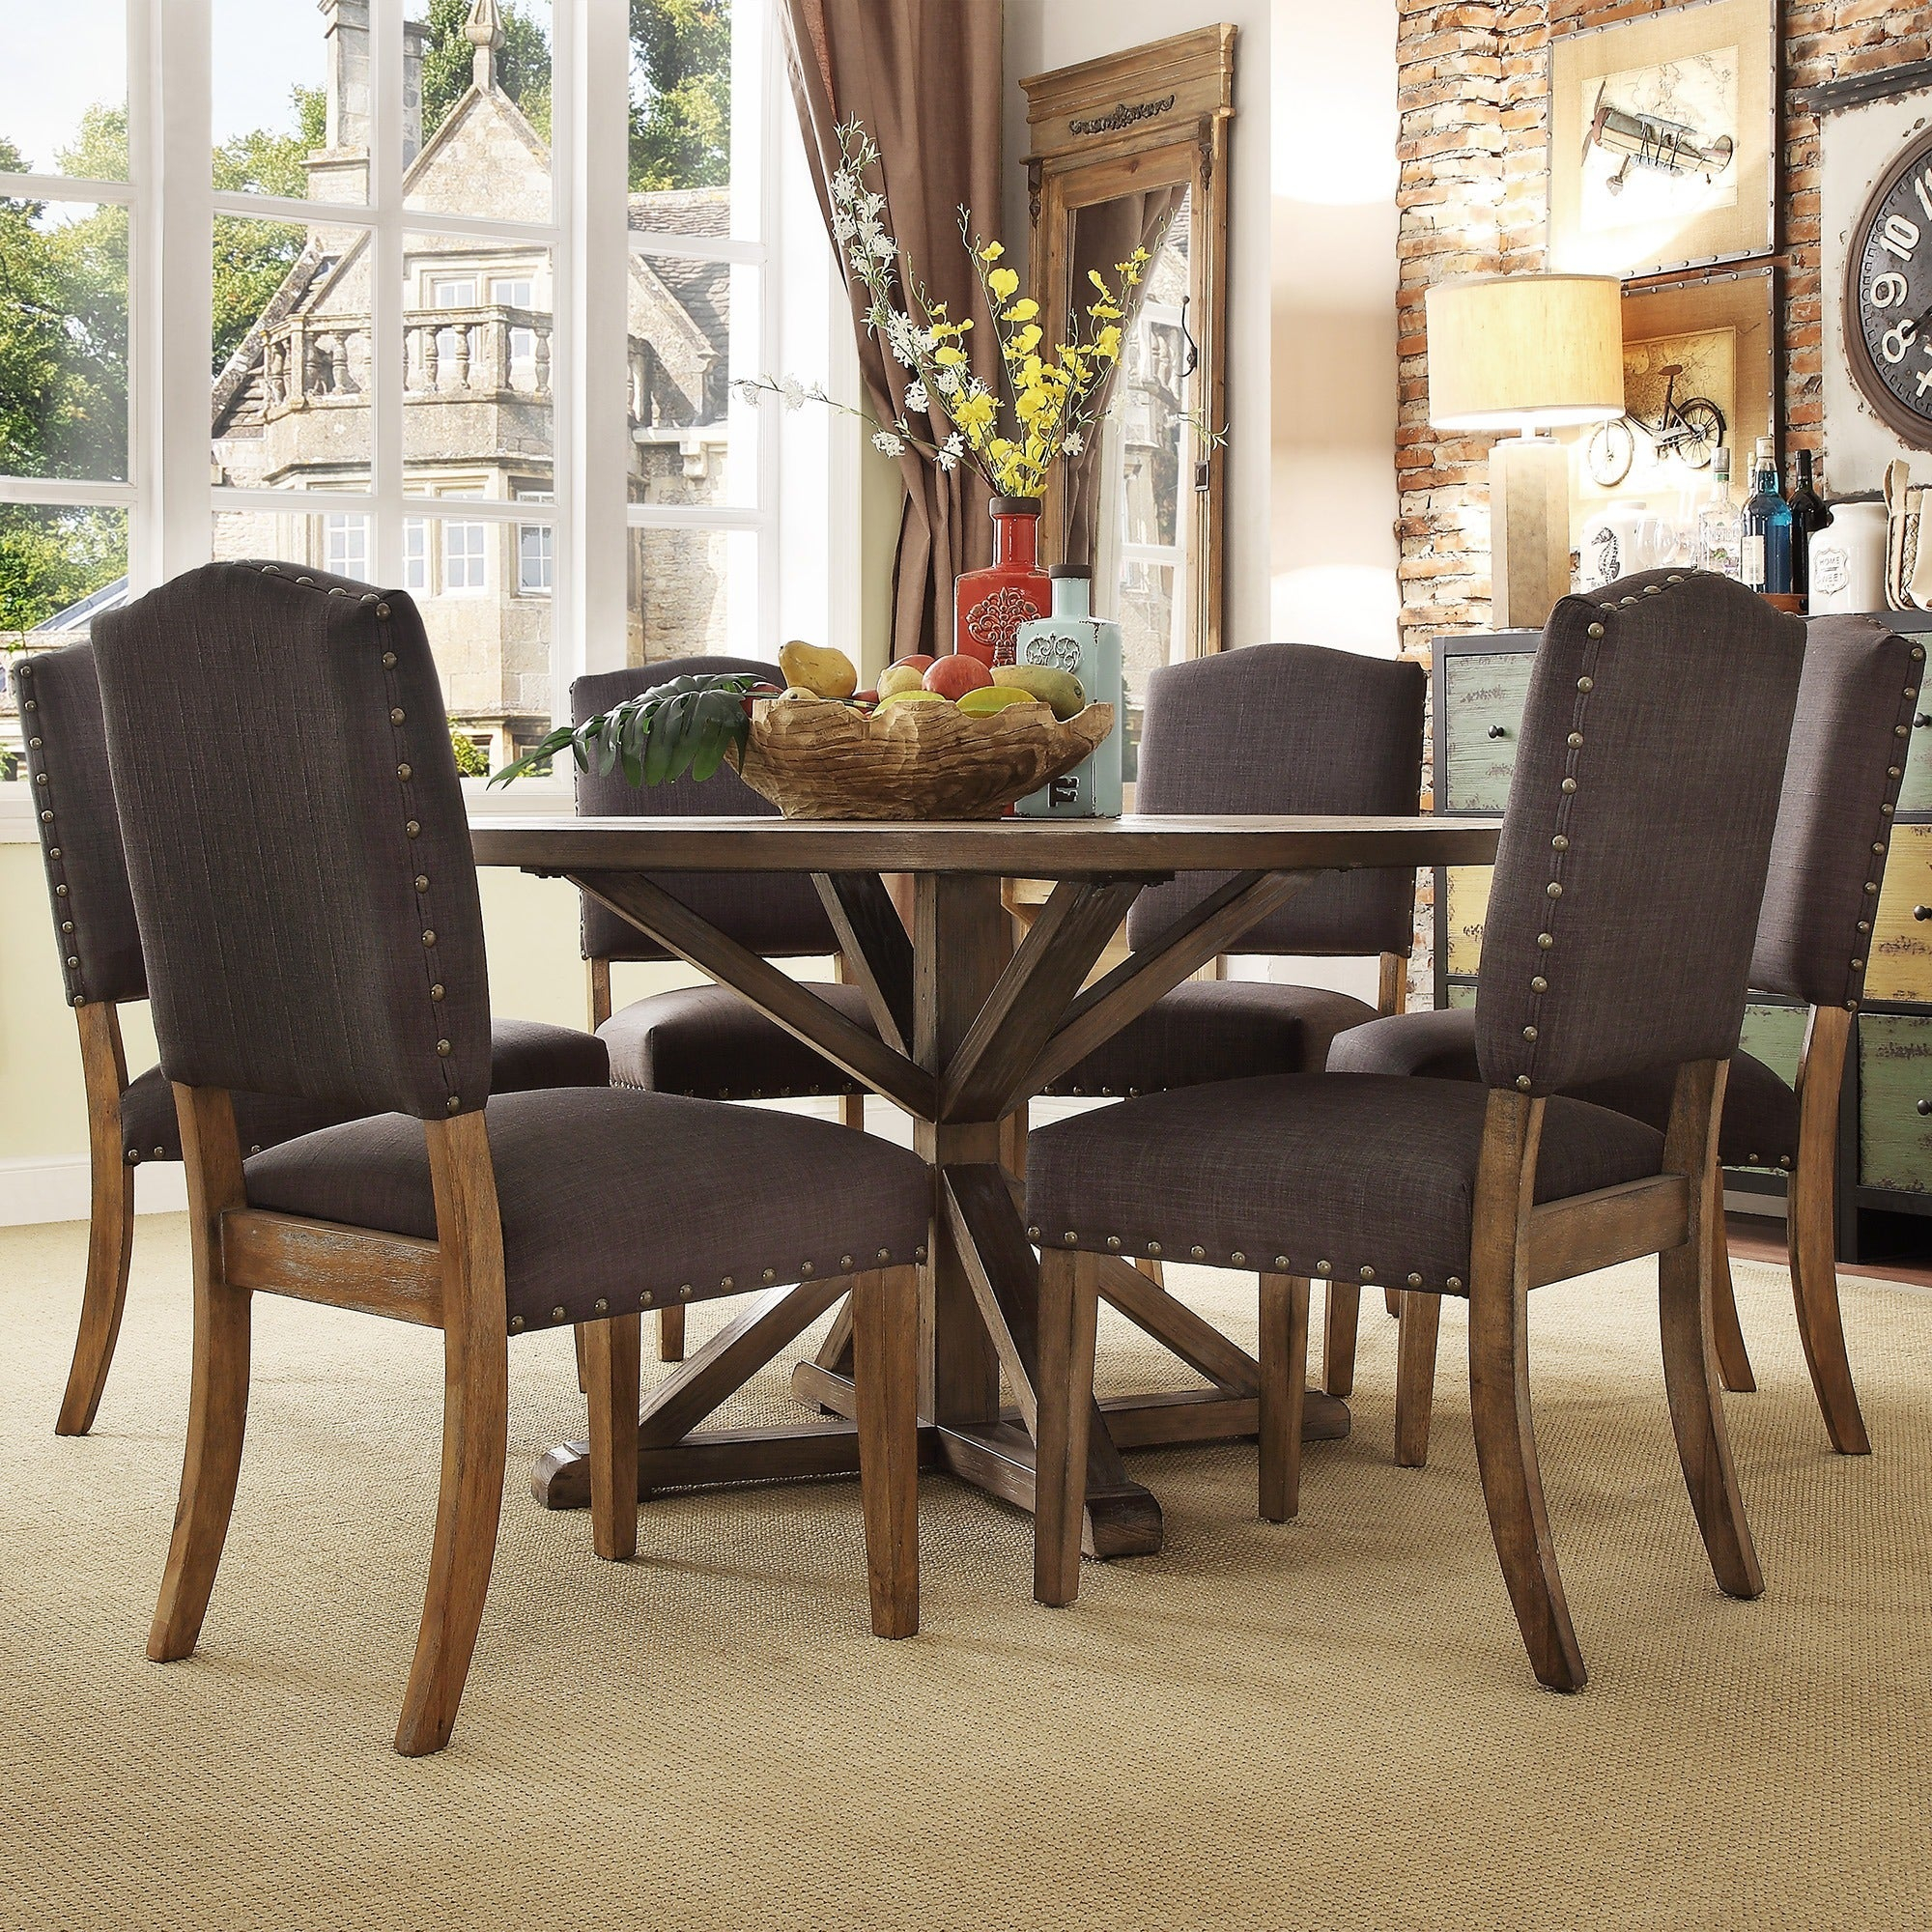 Details About Benchwright Rustic X Base Round Pine Wood Nailhead 7 Piece In 2017 Gray Wash Benchwright Dining Tables (View 22 of 25)